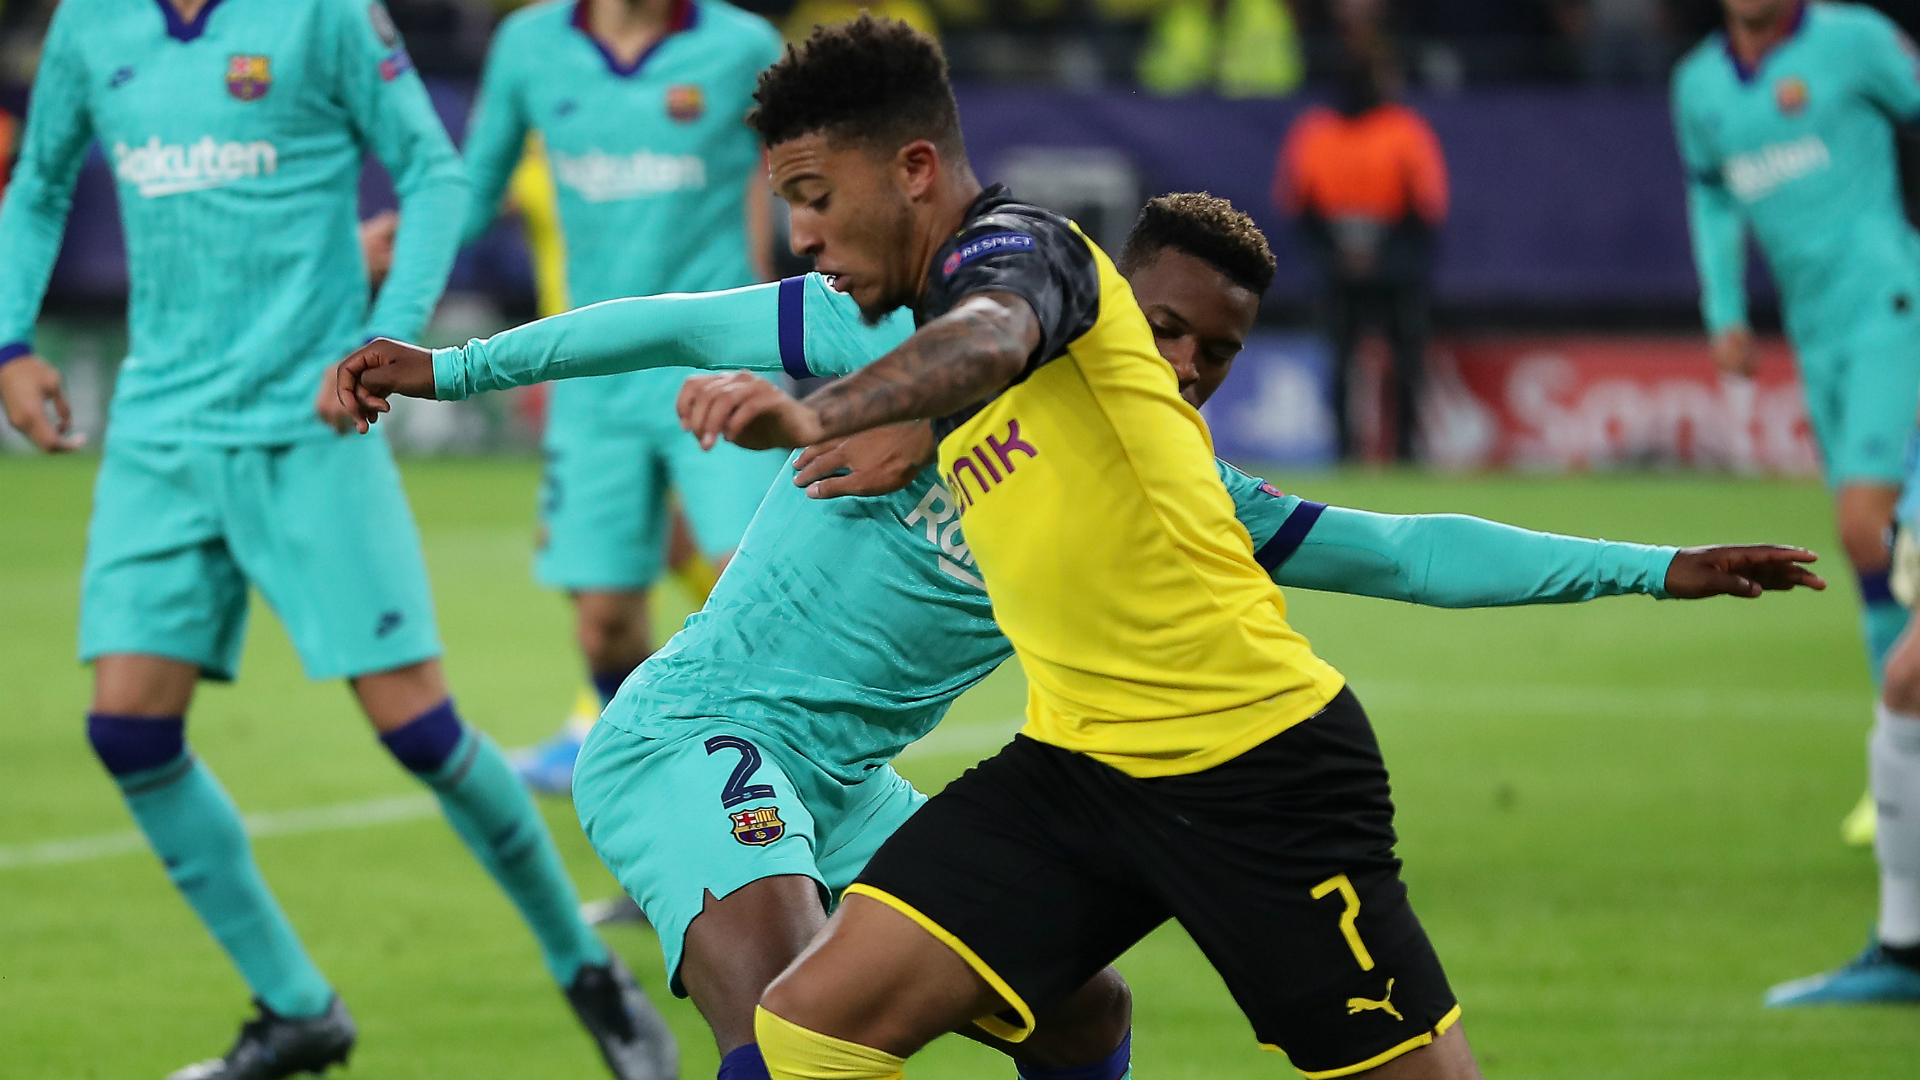 Sancho: My future? I just want to do well with Dortmund